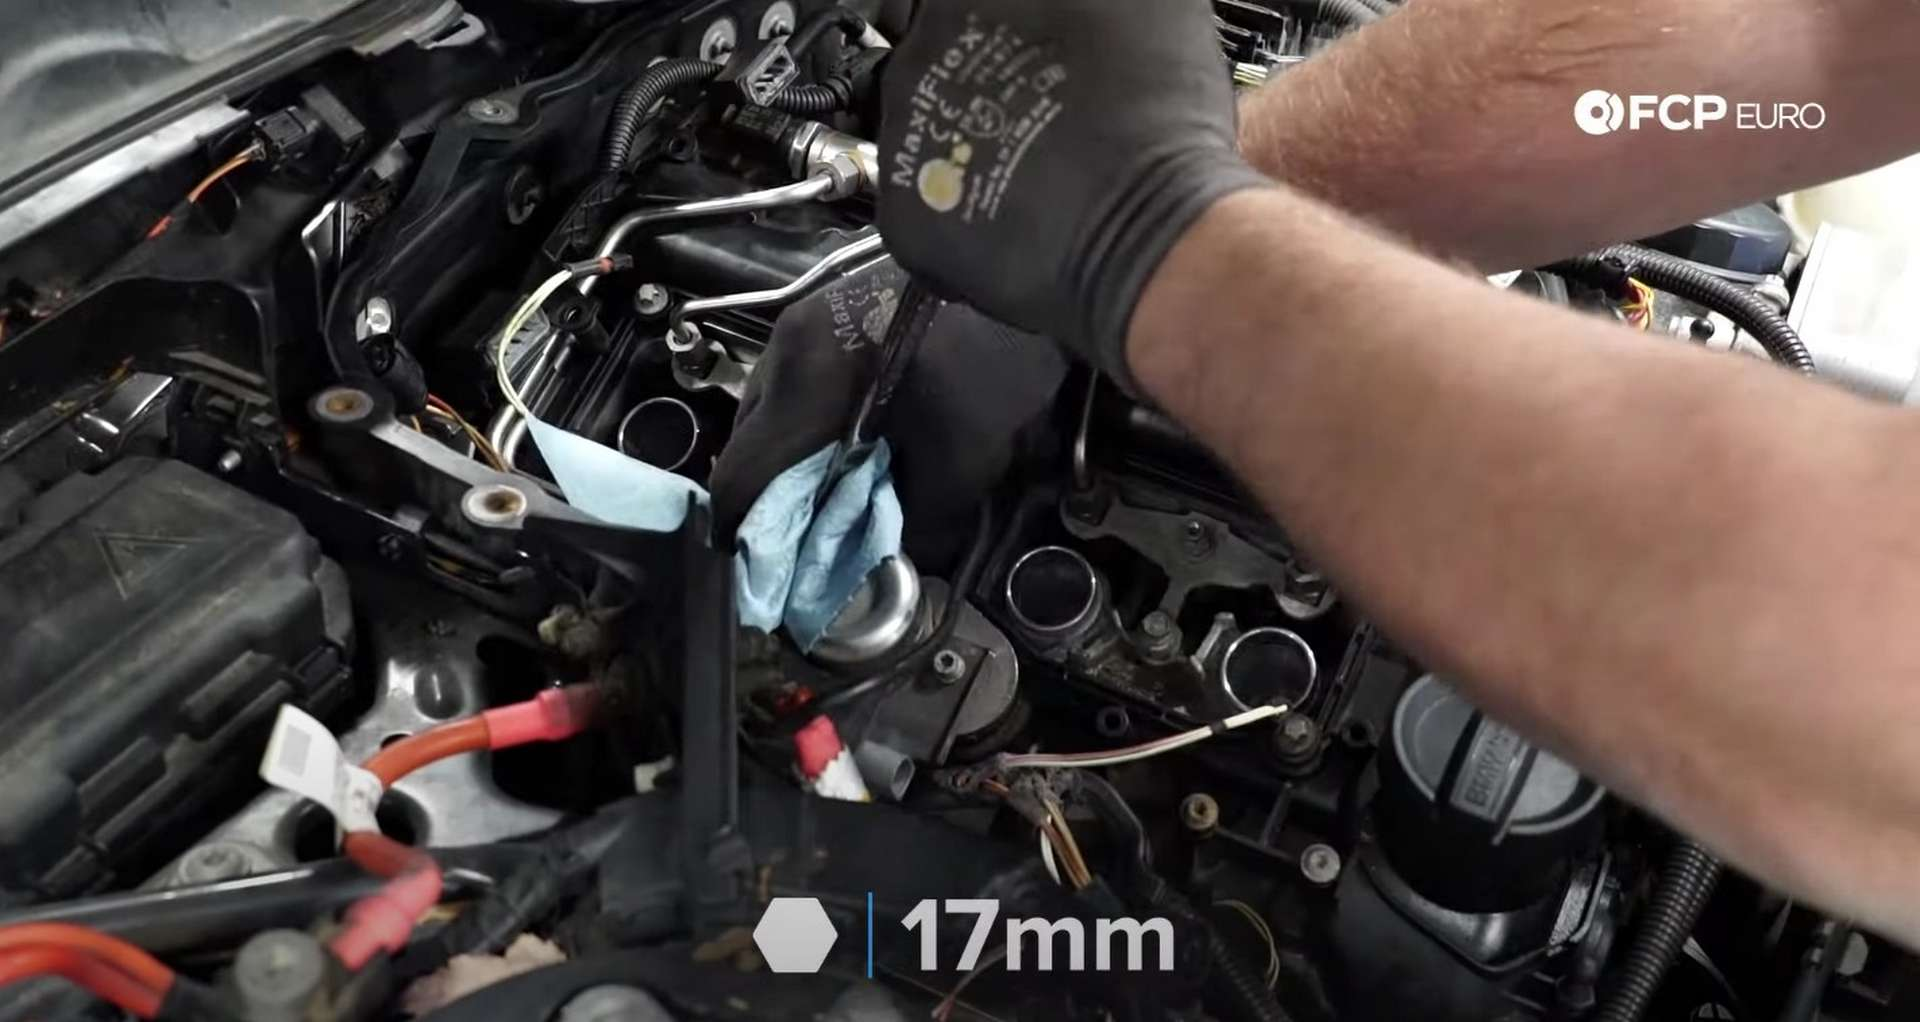 DIY BMW F30 Fuel Injector Replacement disconnecting the high-pressure feed line from the pump